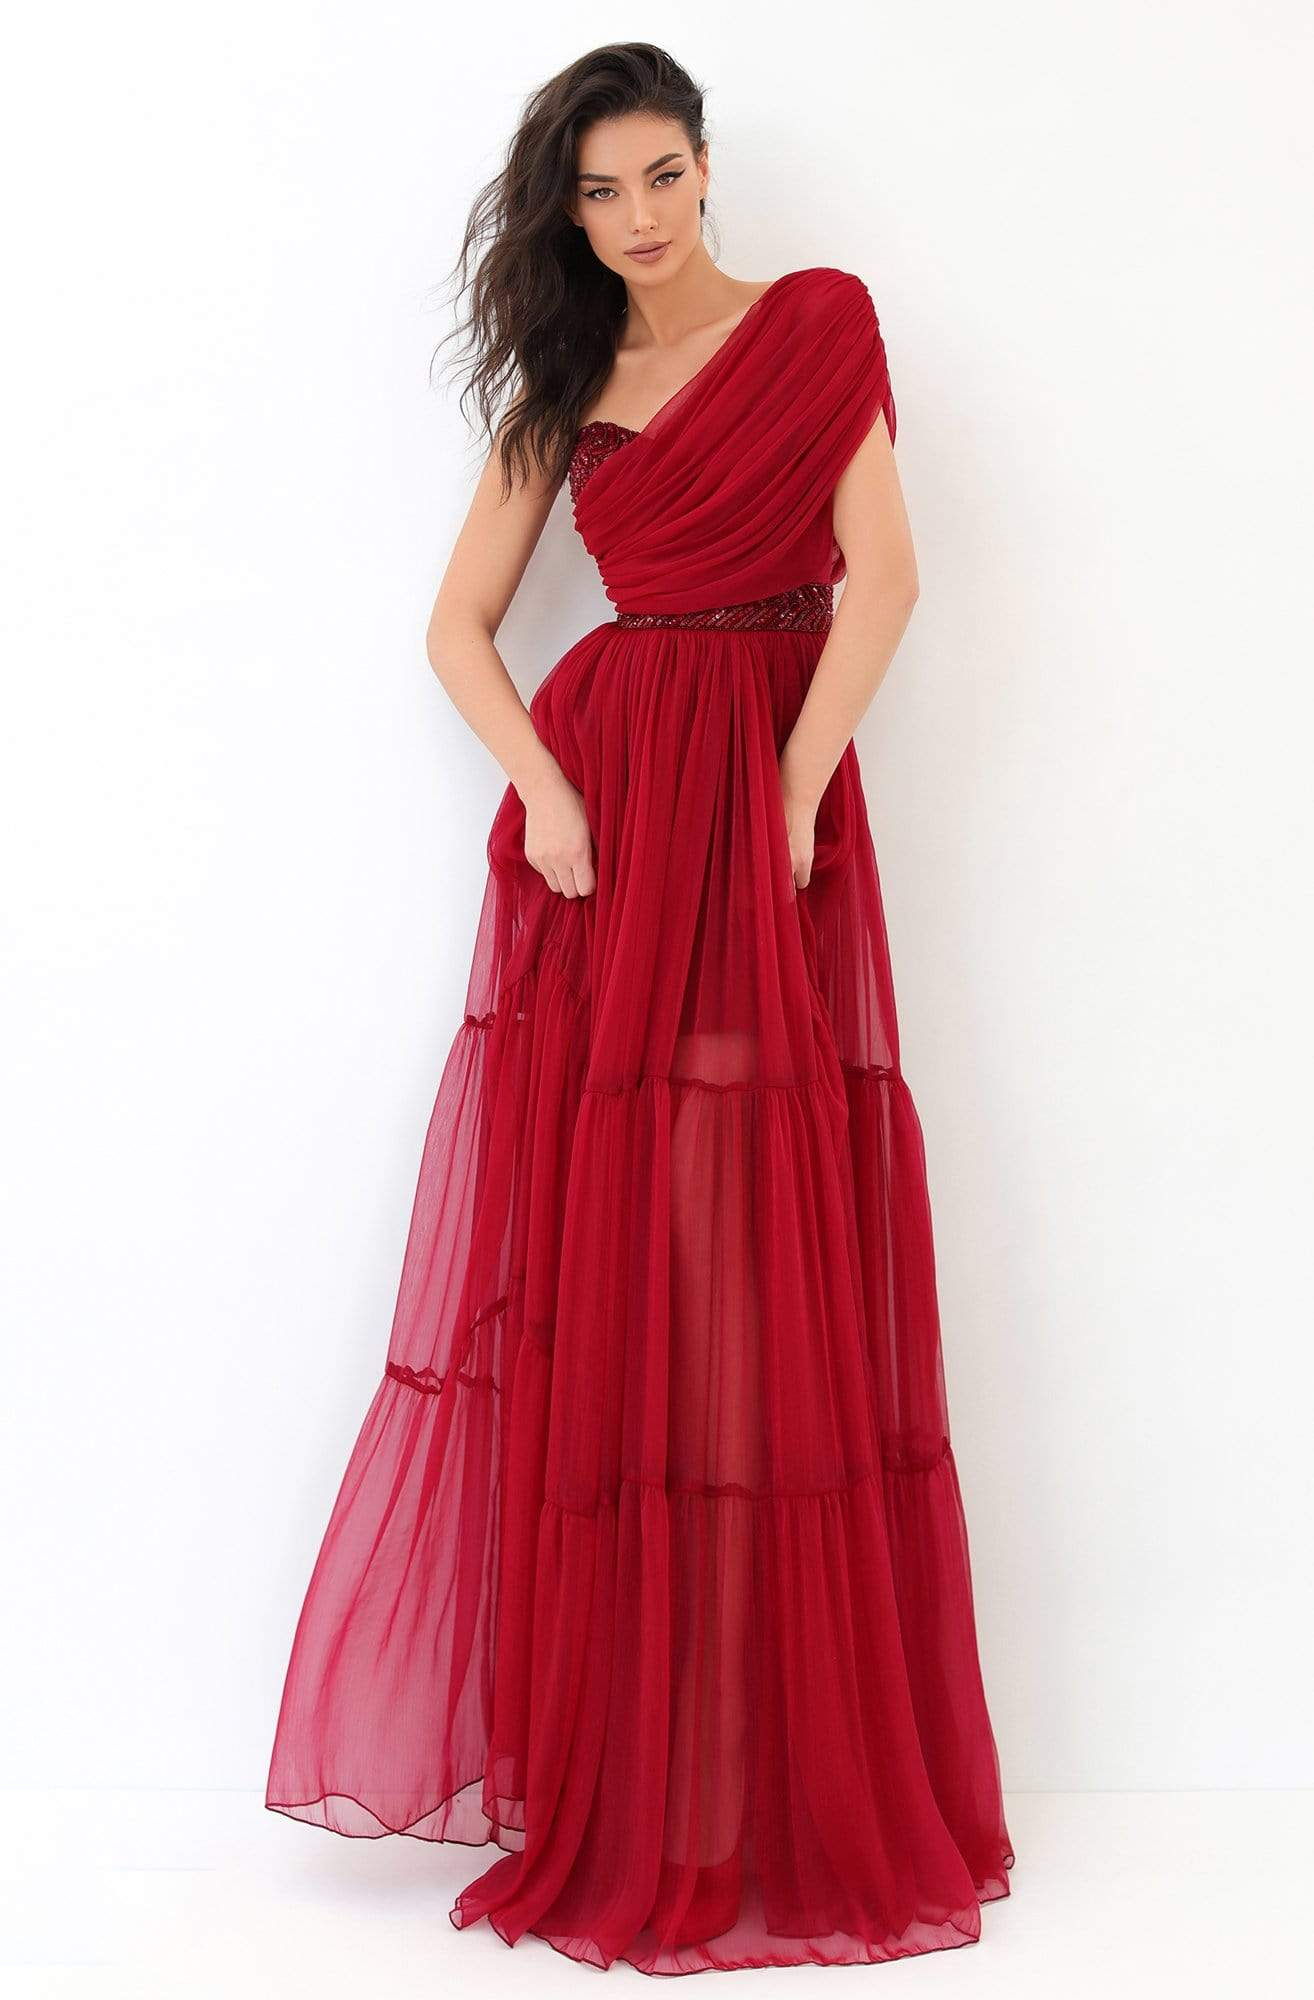 Tarik Ediz - 93814 Ruched Asymmetrical A-Line Dress Prom Dresses 0 / Red